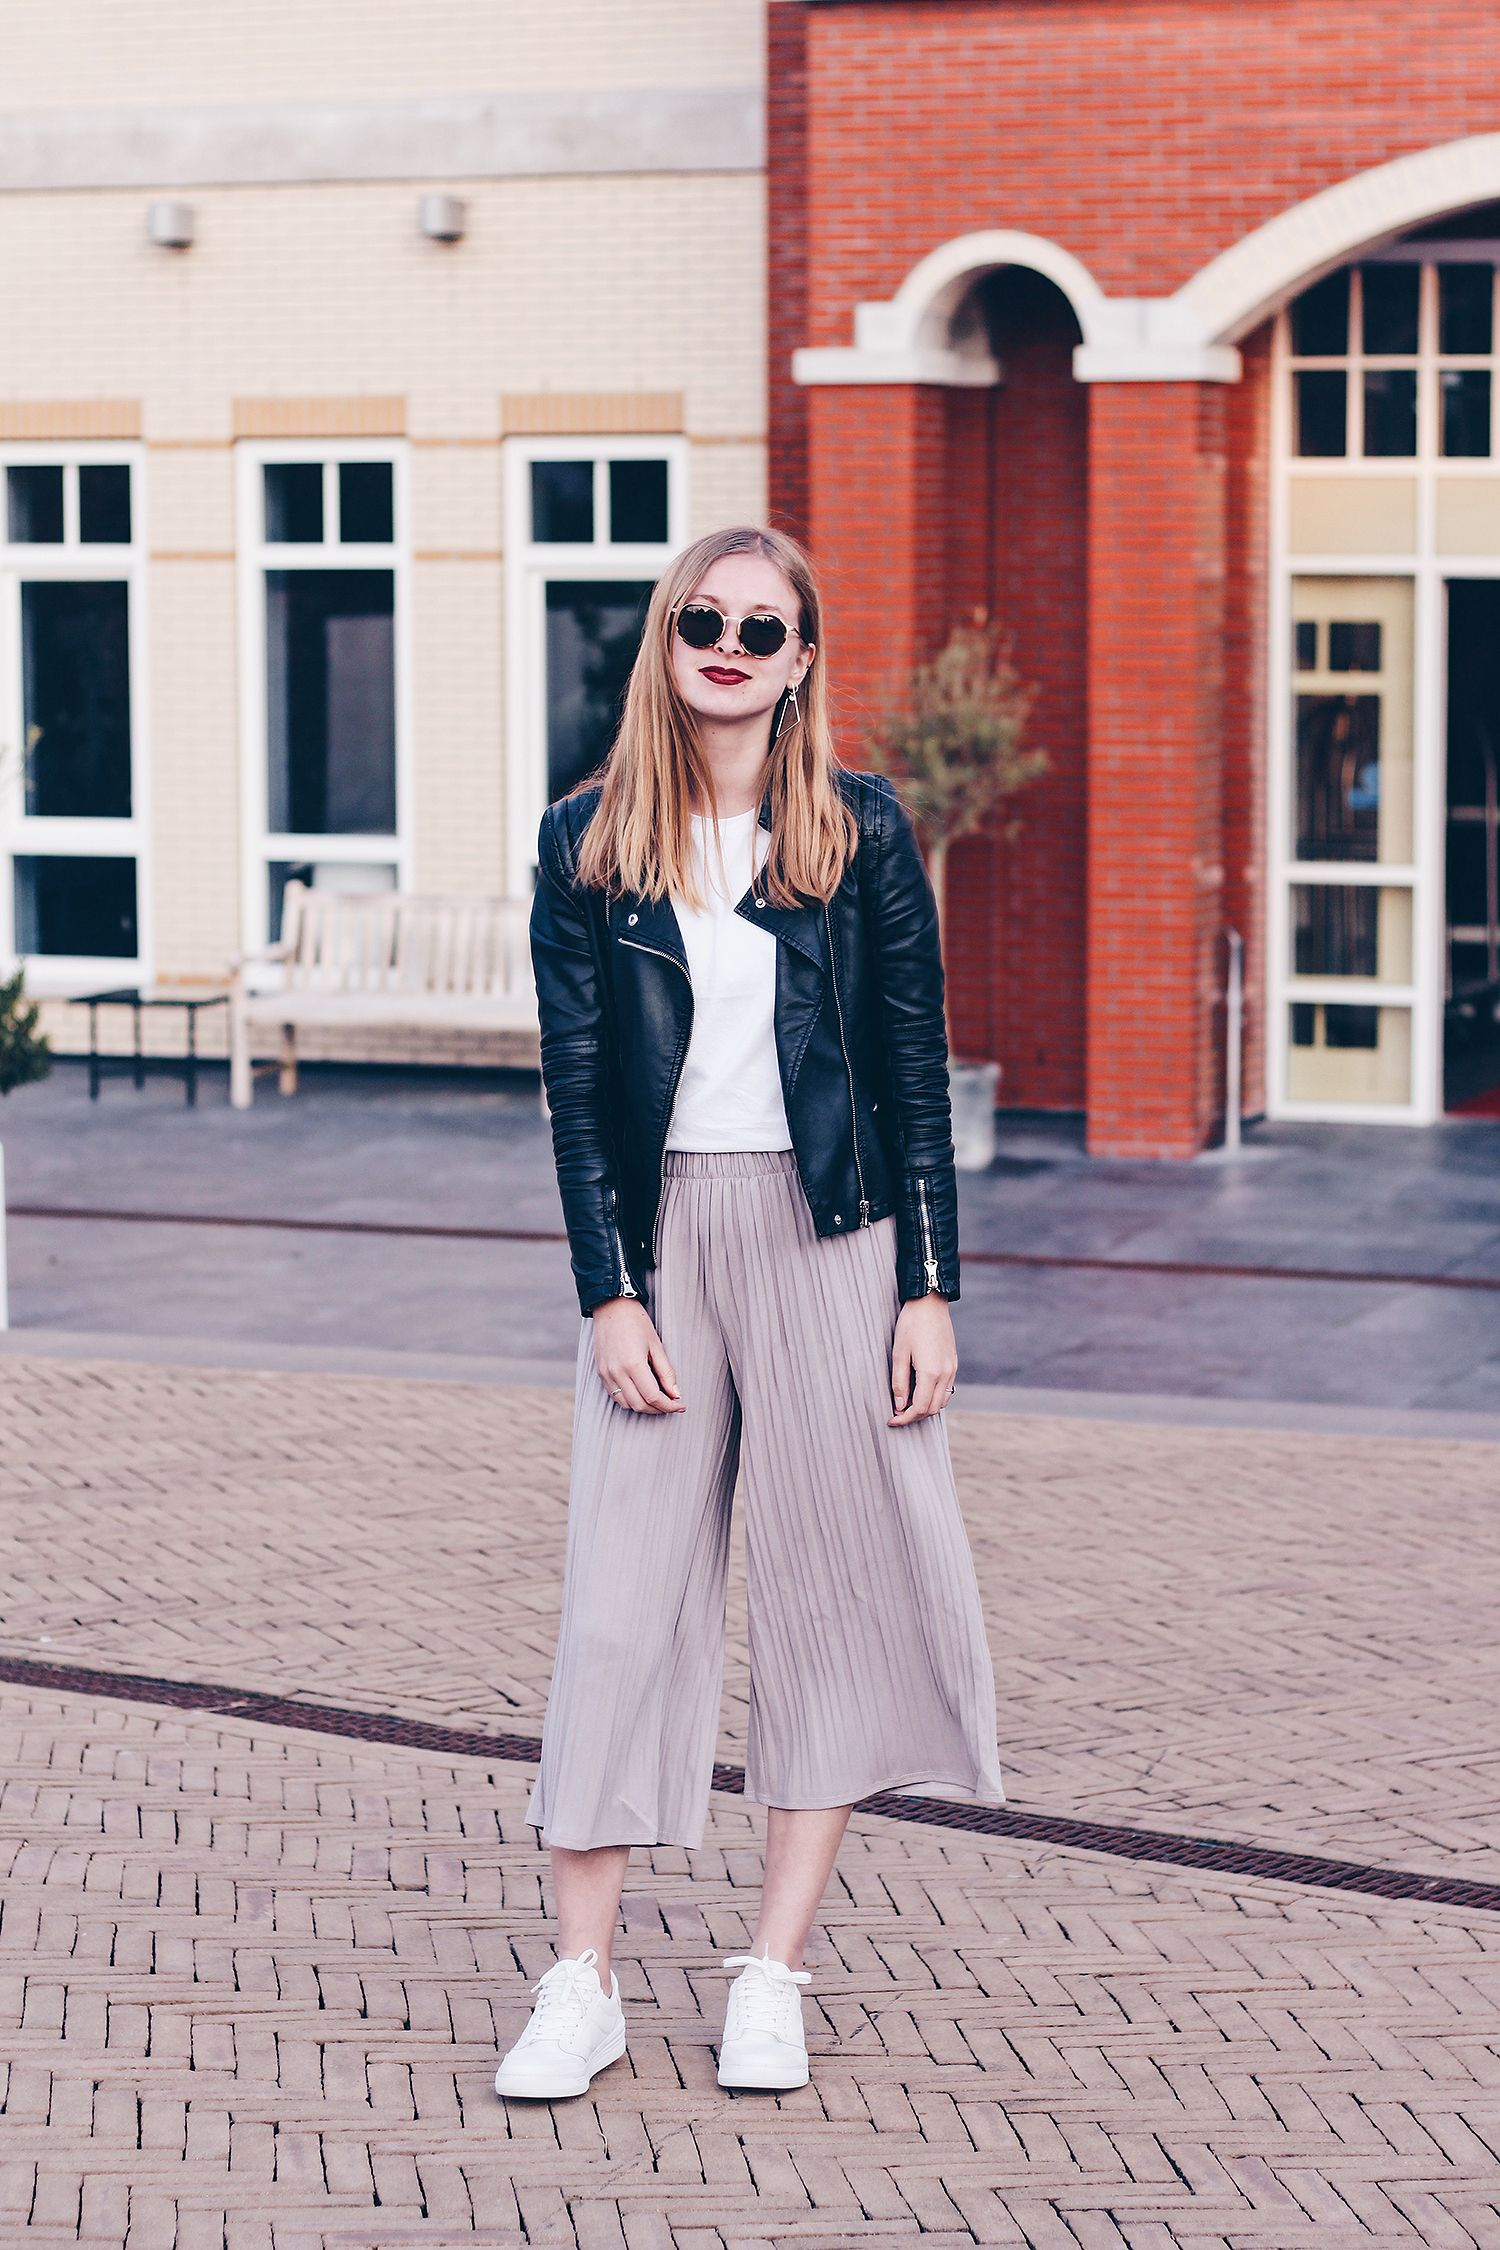 7617d0d1a6595 Wearing white sneakers with culottes in this outfit!    fashion blogger  from Amsterdam